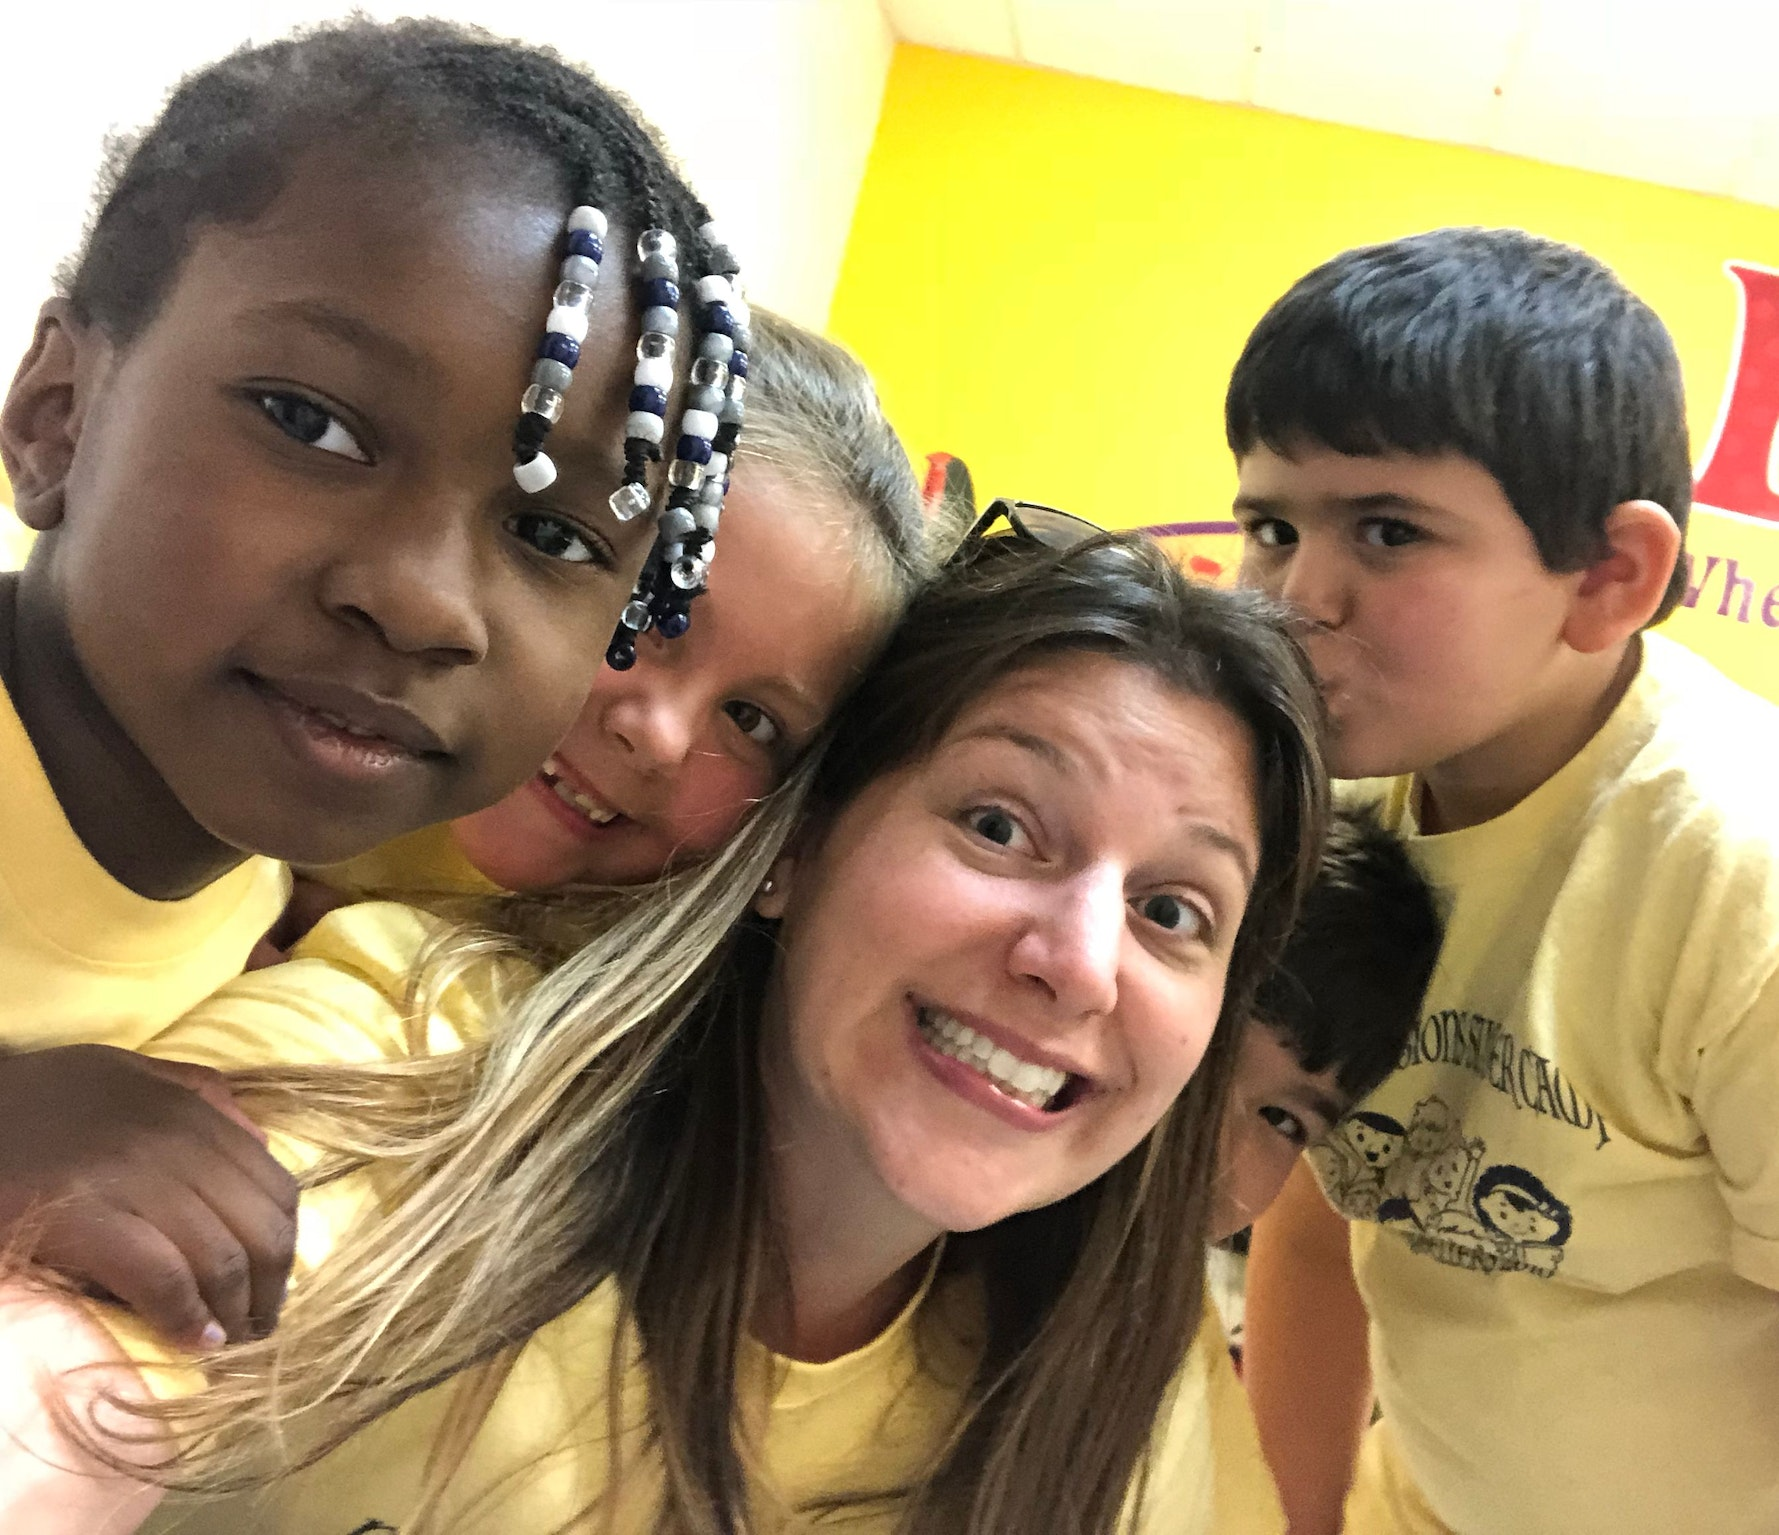 Tiffany Searles smiling while surrounded by young students in yellow shirts